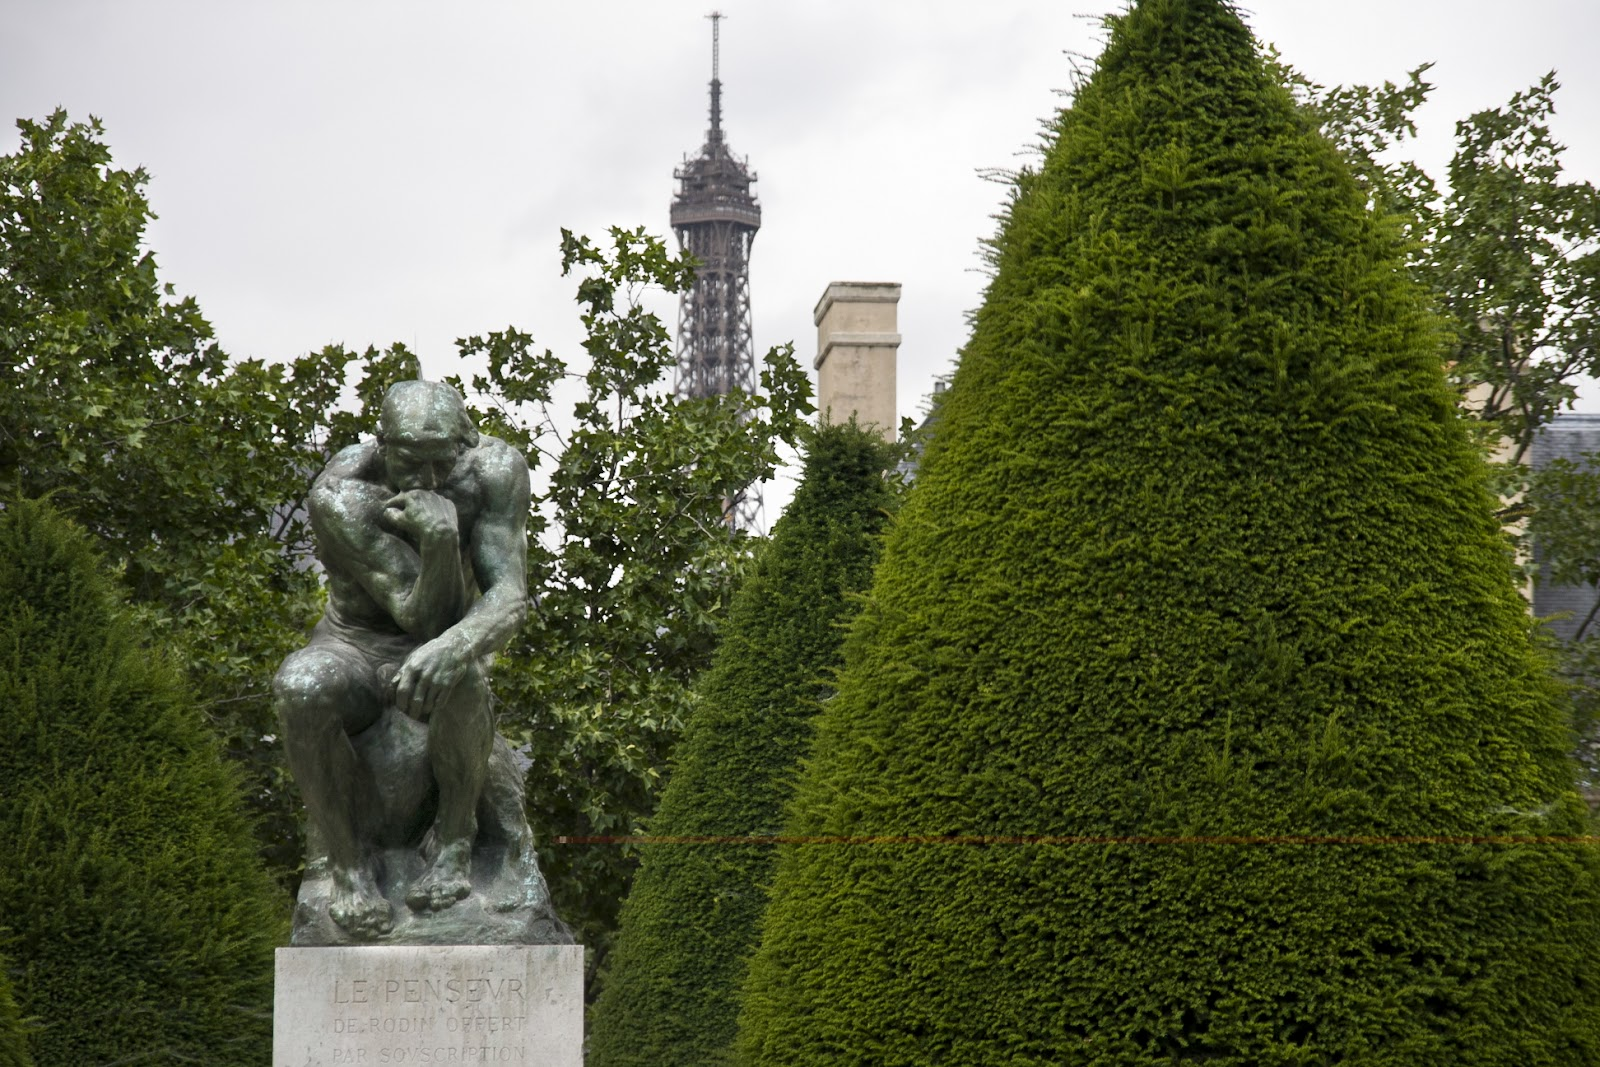 Offshore winds a moment in the life of the jardin de rodin 39 s odd statues - Statue jardin ...